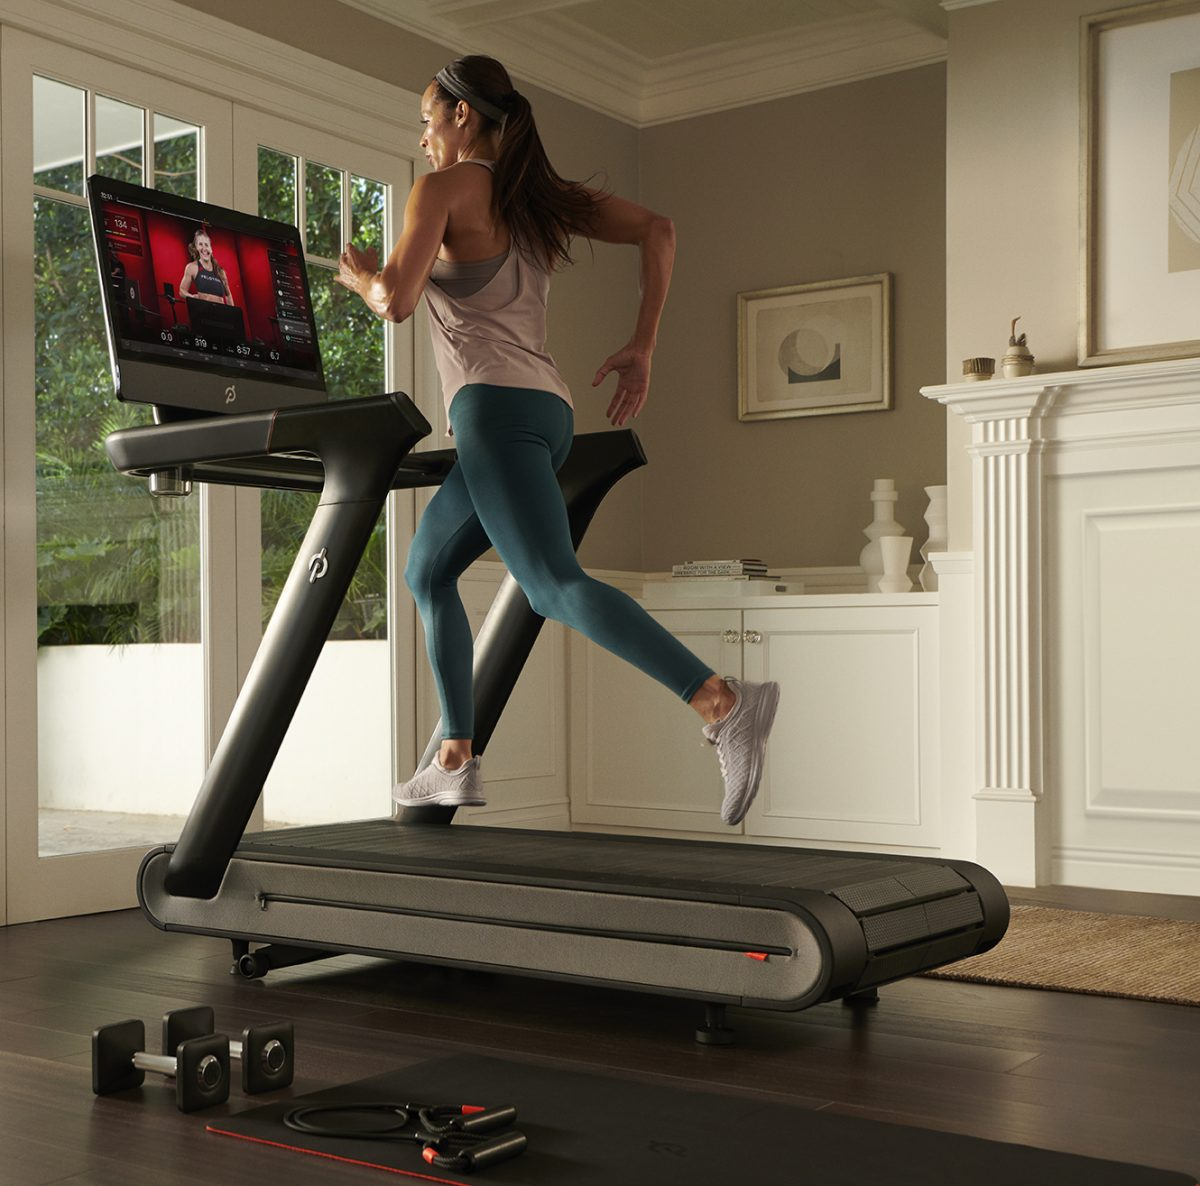 Peloton expanded its lineup last year with the Tread, a smart treadmill.